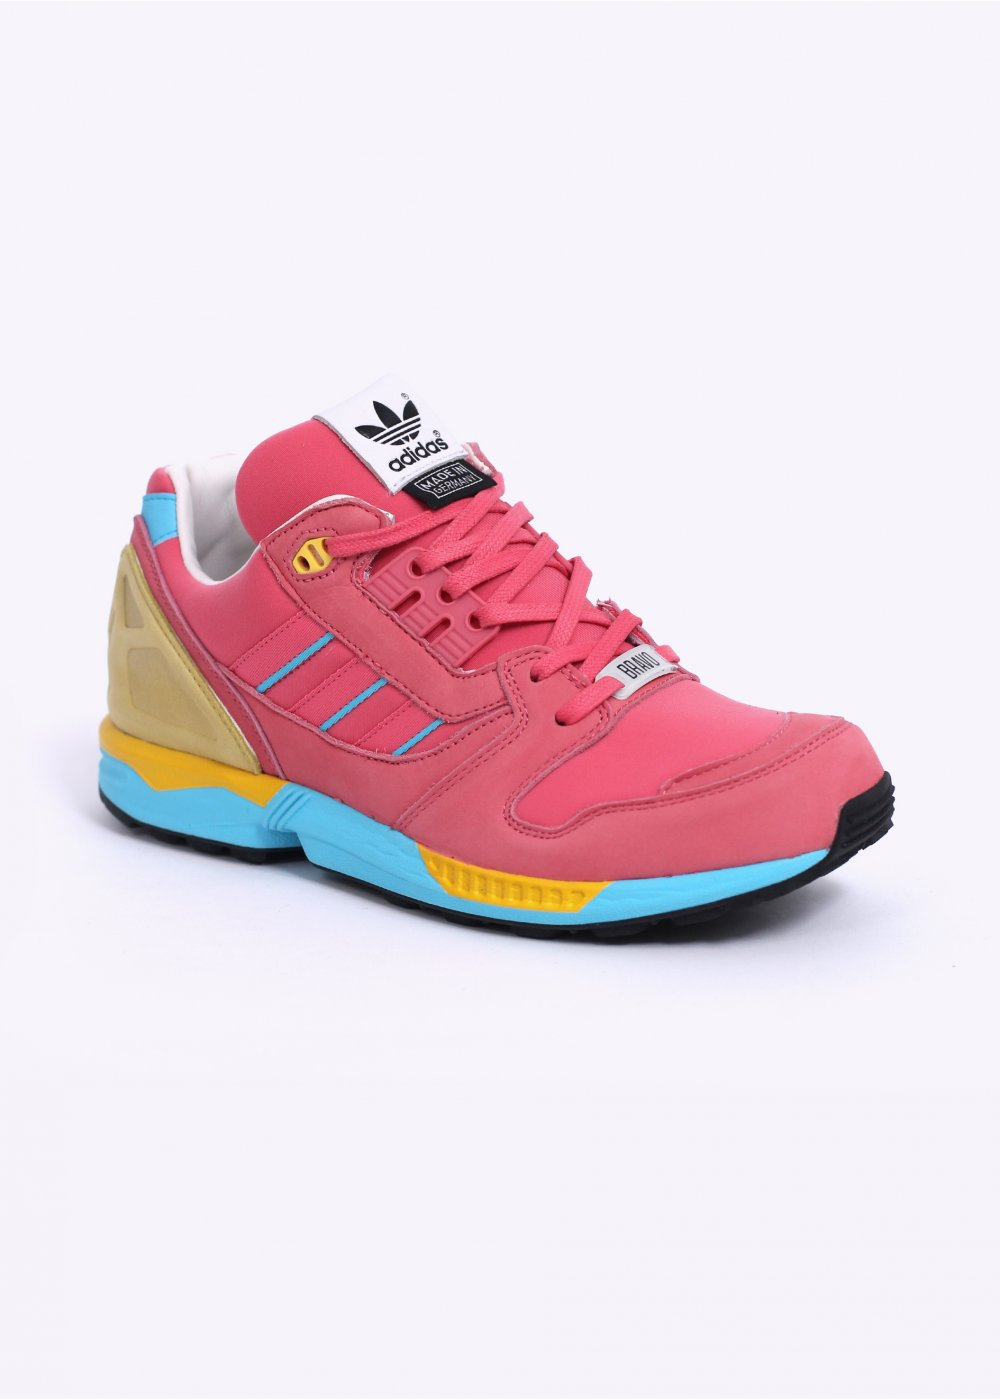 huge discount eb83d 2389a Fall of the Wall - Bravo  ZX 8000 Trainers - Bliss Pink   Light Aqu